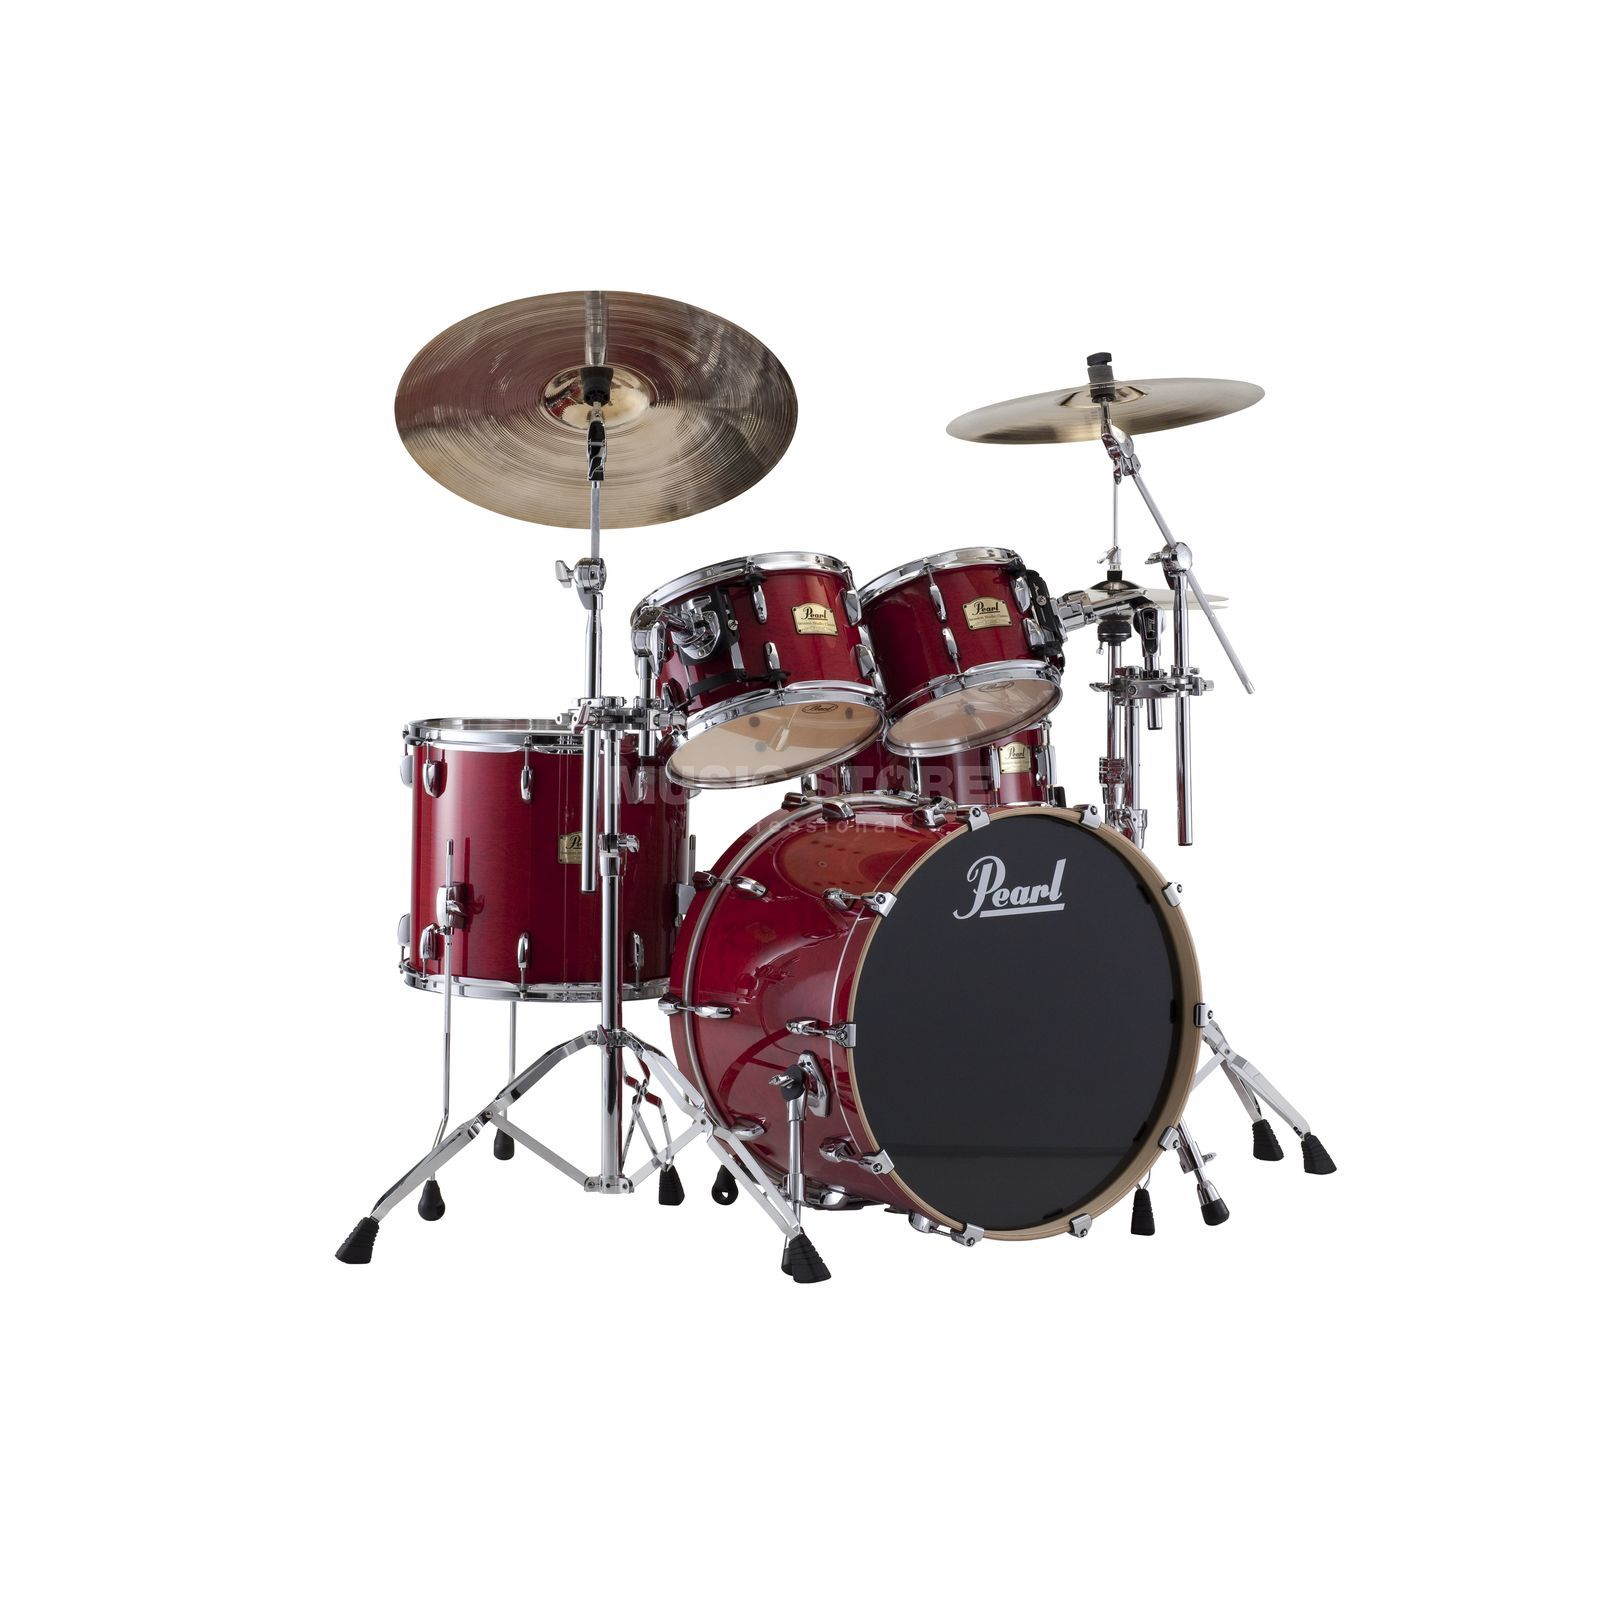 Pearl Session Studio Classic SSC924XSDP/C, Sequoia Red Image du produit